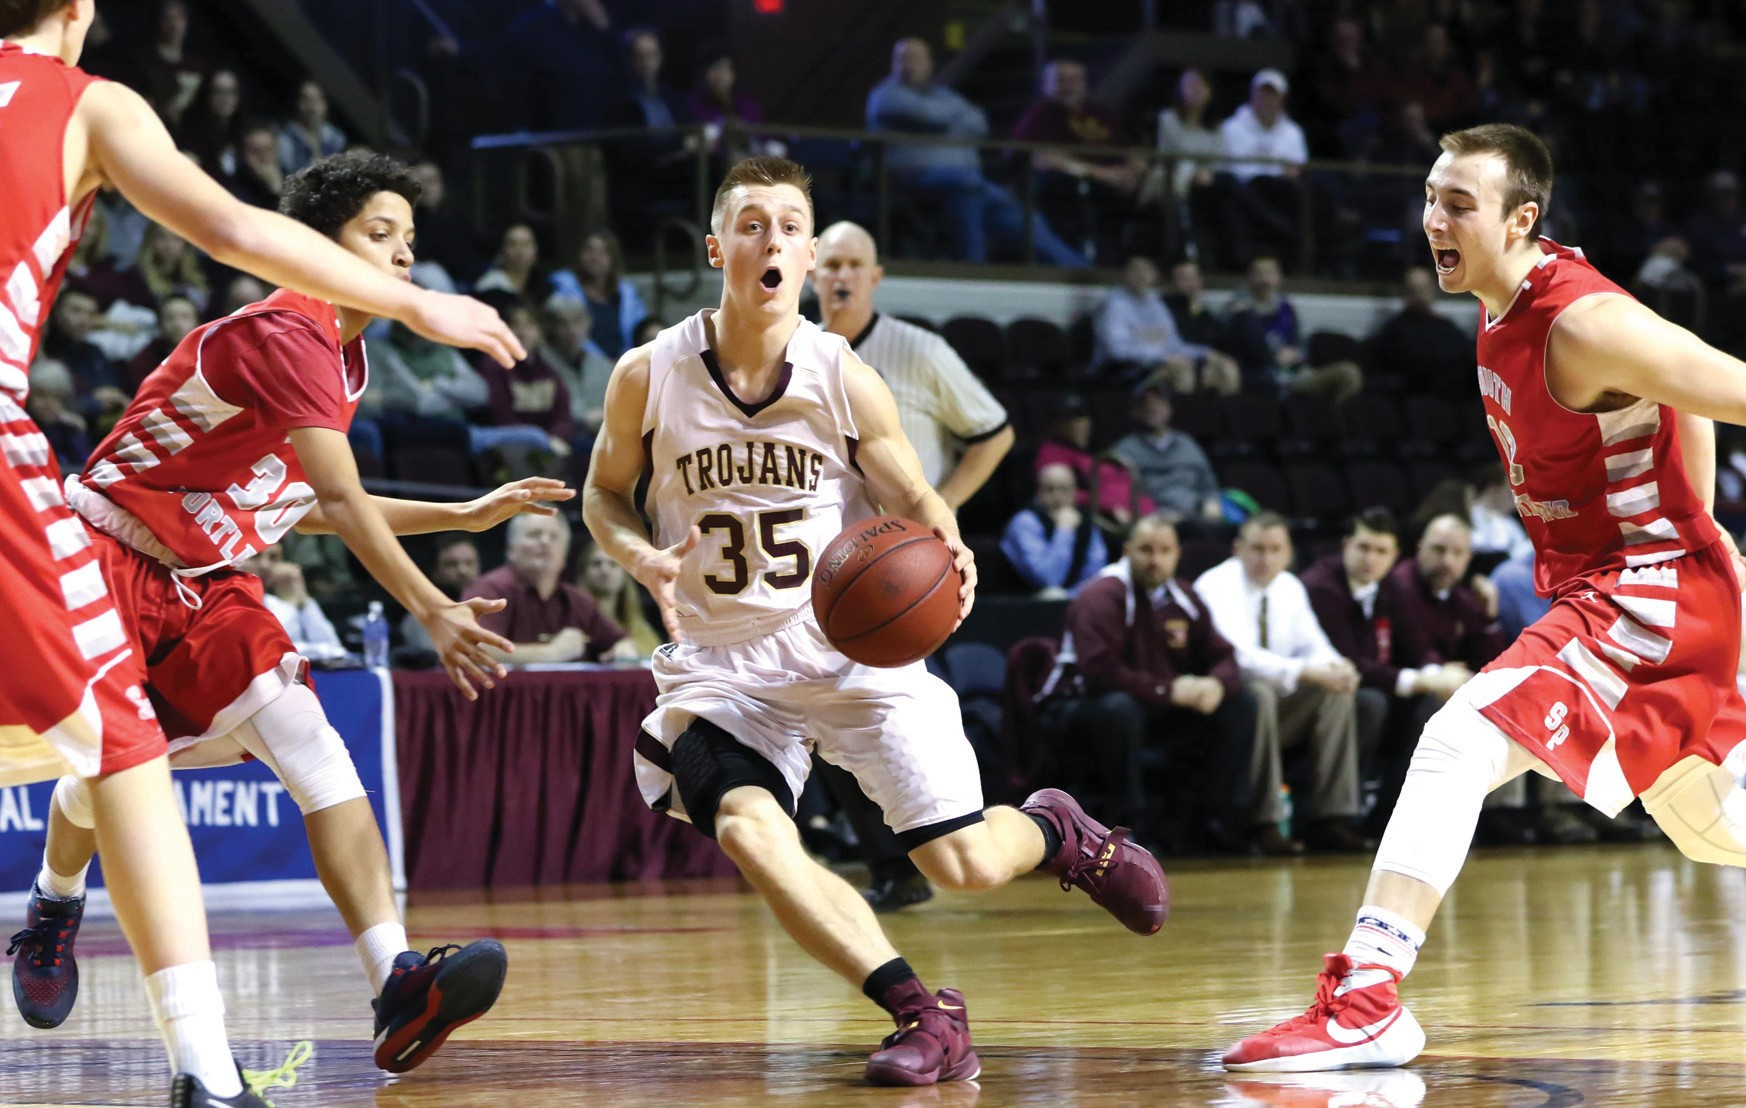 Thornton Academy's Jack Tilley drives to the basket during Tuesday's Class AA semifinal game against South Portland.